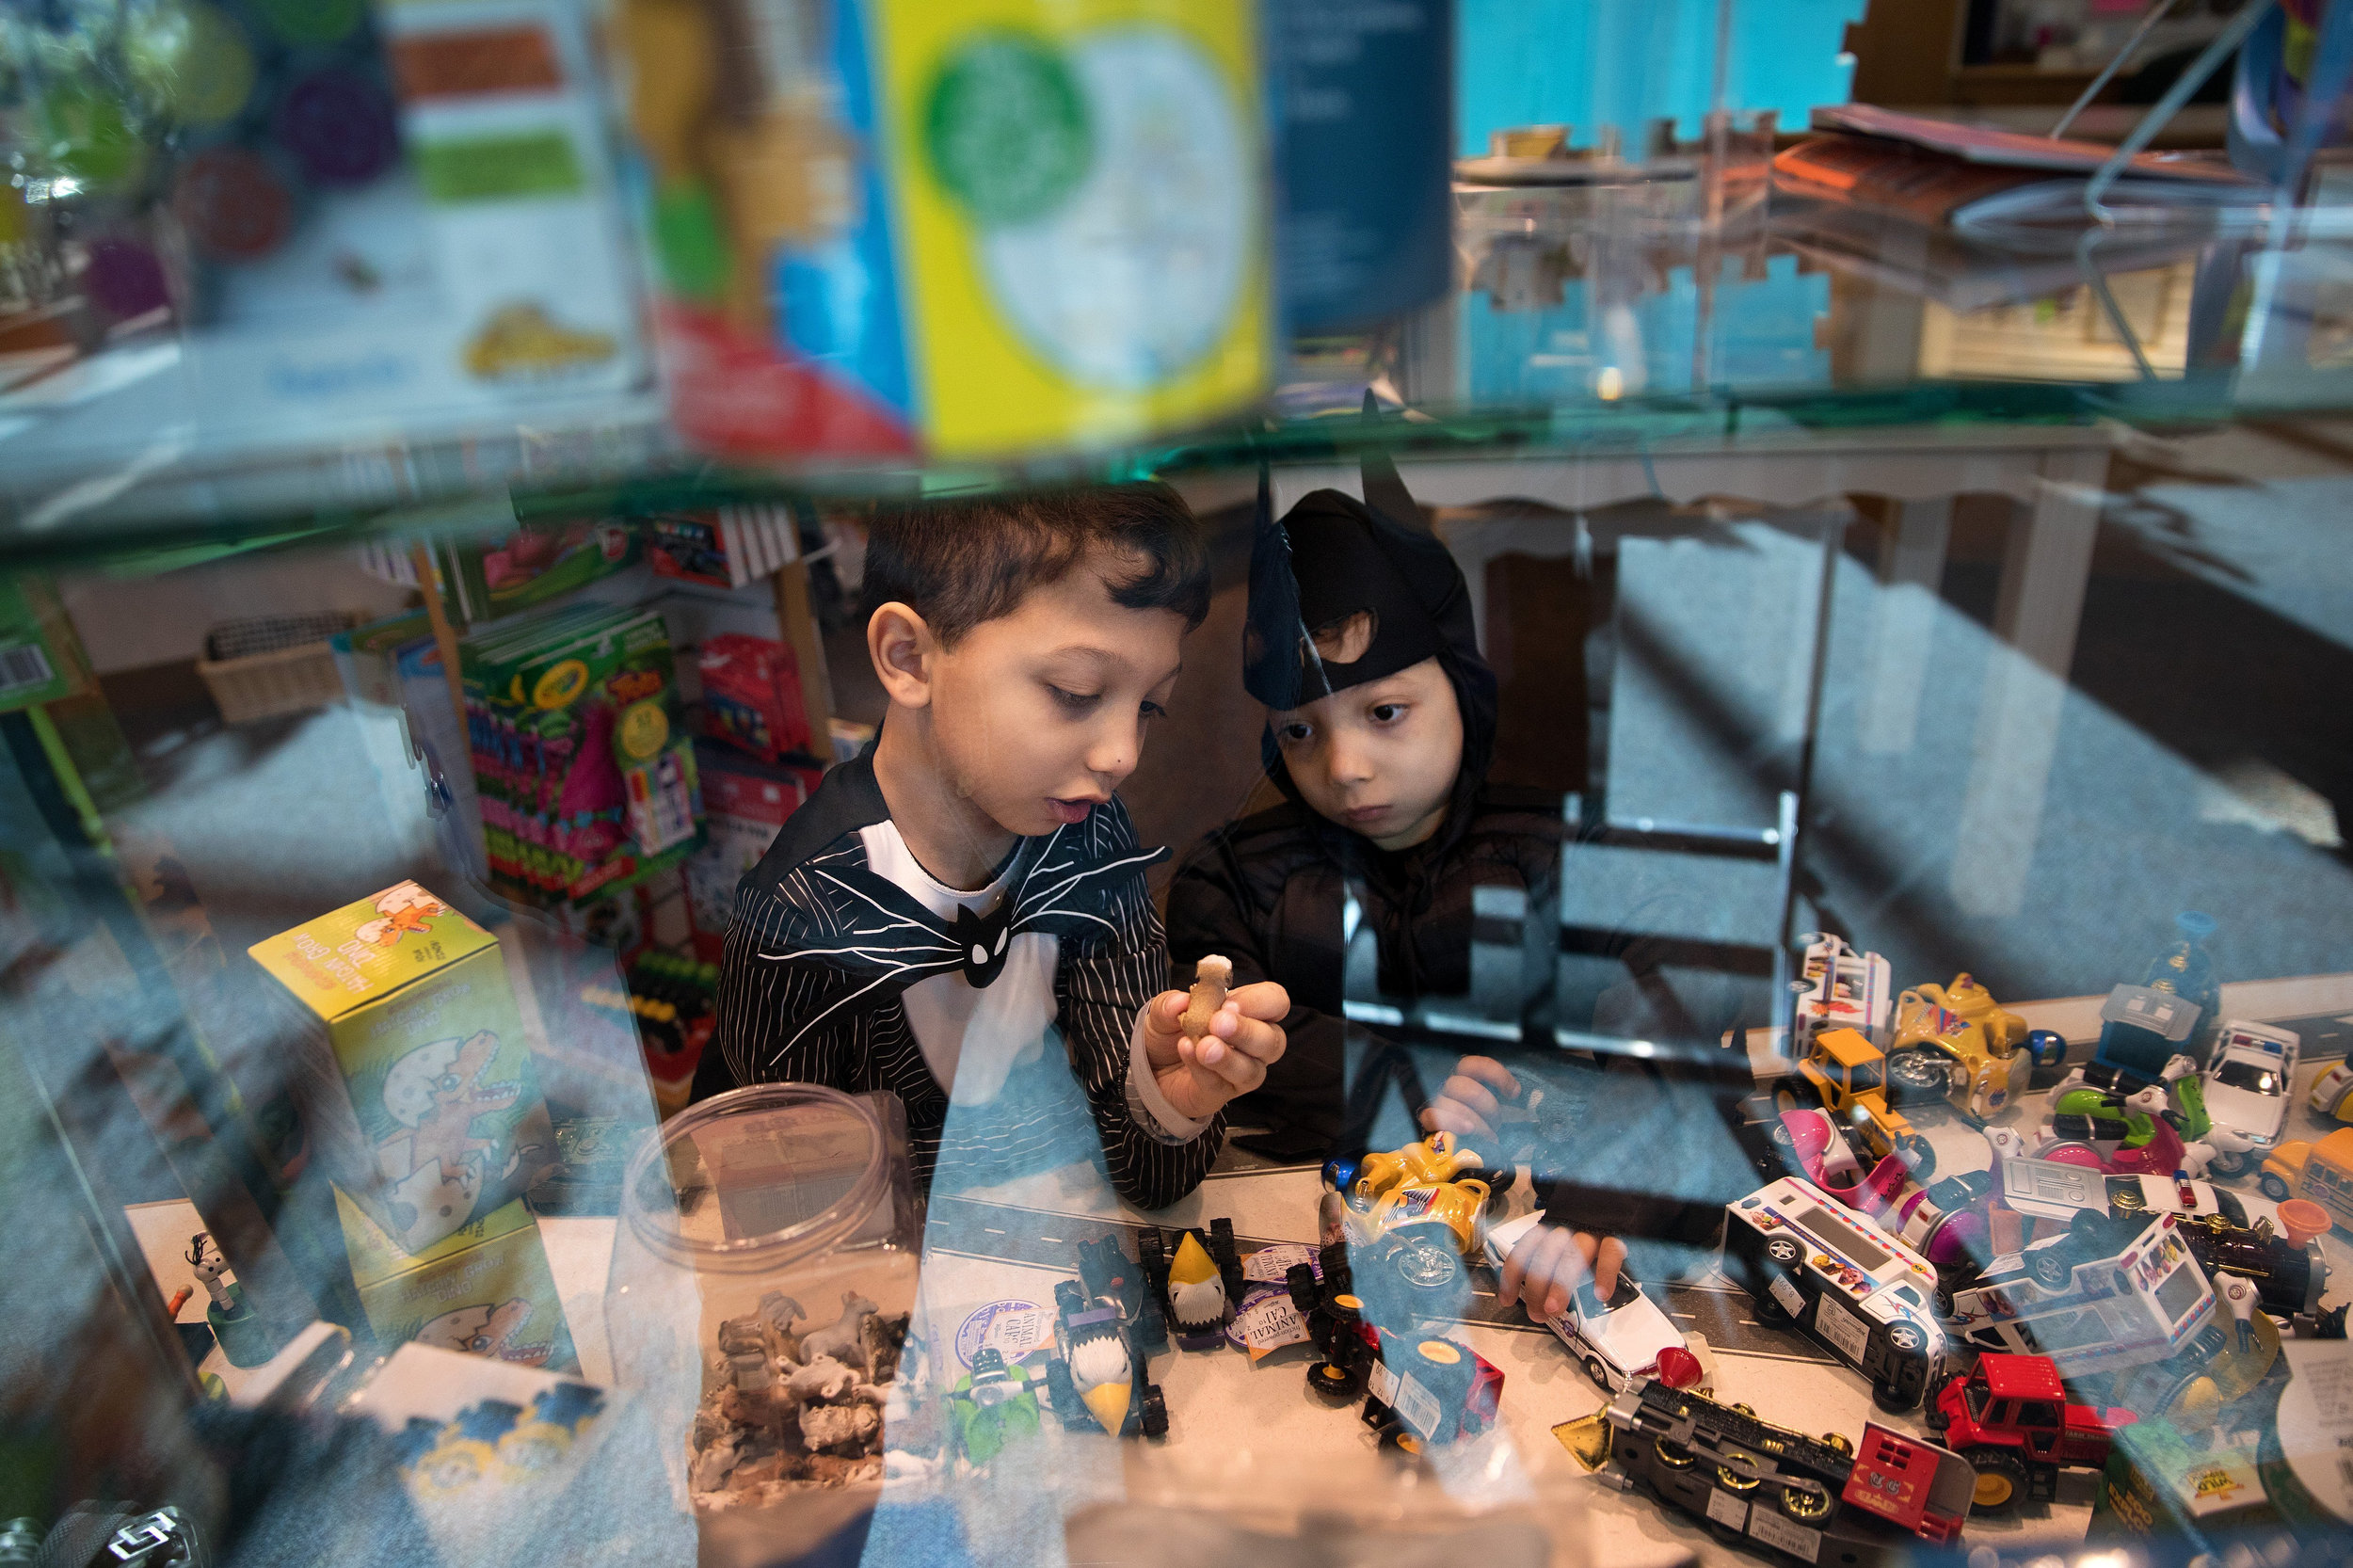 """Arshaan, left, and Jahan explore the gift shop at Children's Hospital & Medical Center. """"So why am I so passionate about driving for a cure? People say you should just accept things the way they are and love your children,"""" Neena Nizar said. """"I do love my children. I love my children tremendously. But I also know what it's like to have pain every day. To not be able to climb up stairs or not be included in certain areas because your feet hurt or your body aches. I do know what it's like."""" She and her sons make up three of the five confirmed cases of Jansen's in the U.S."""